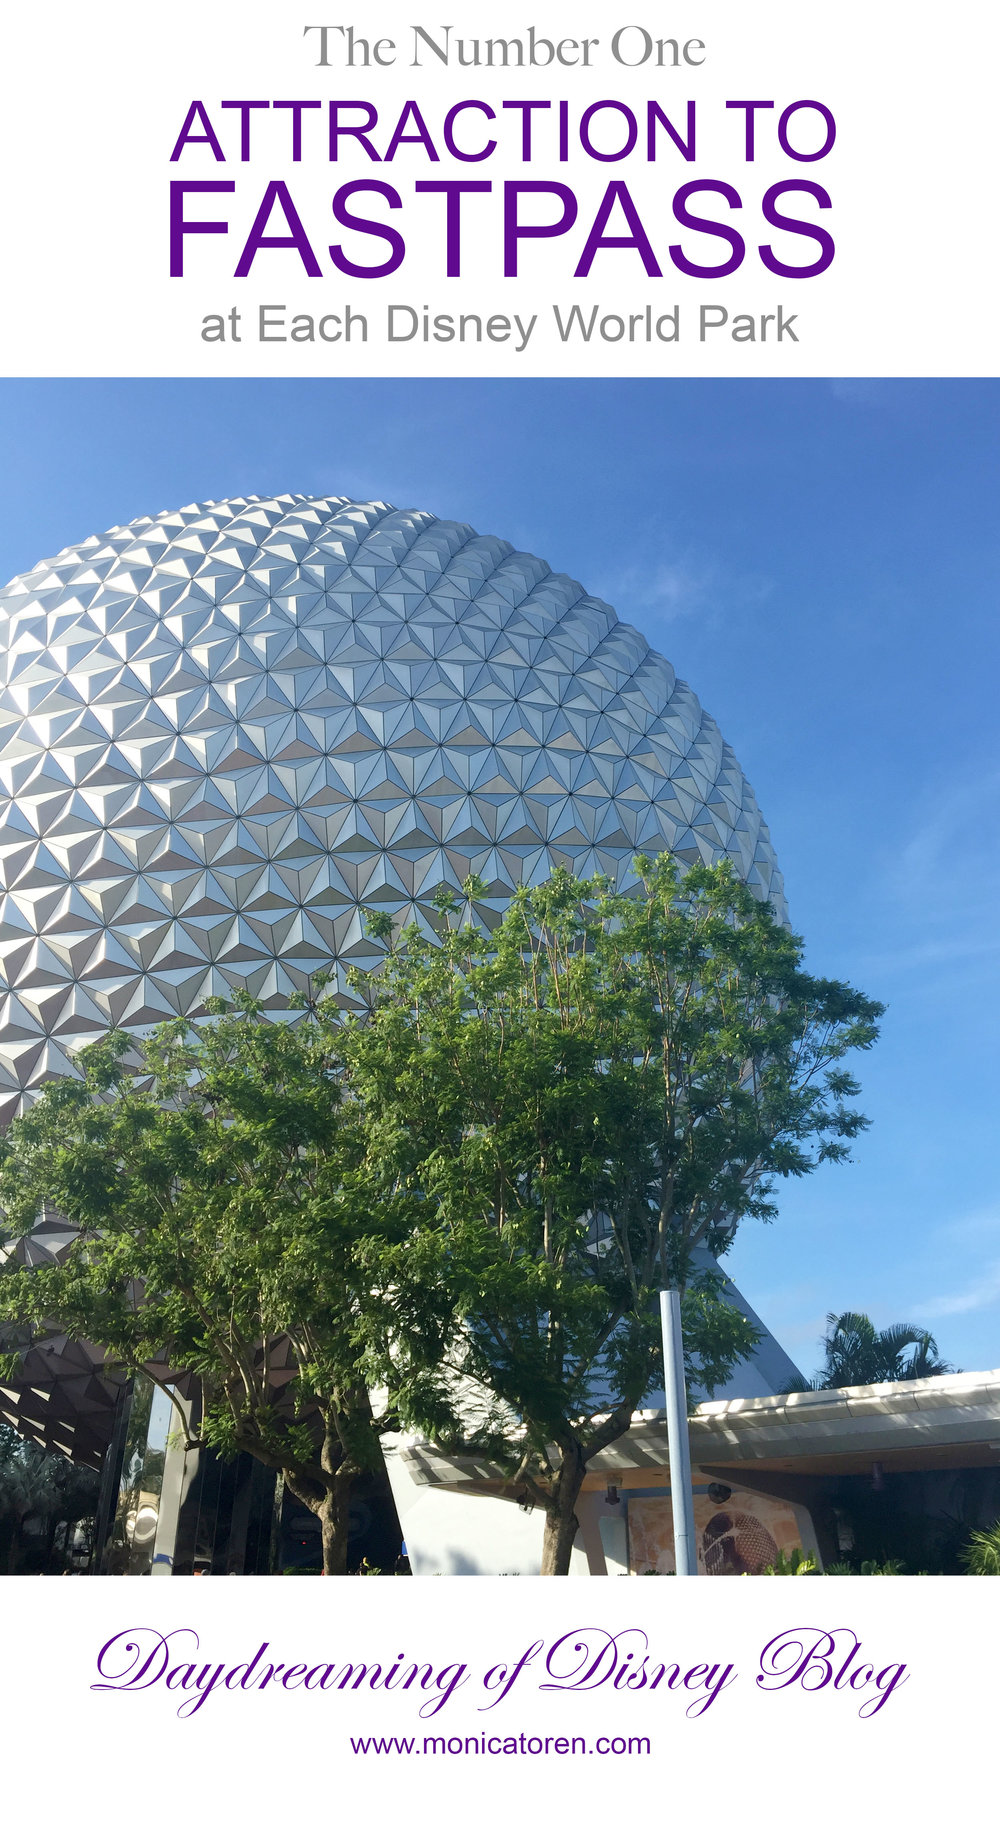 Daydreaming of Disney Blog - The Number One Attraction to Fastpass at Each Disney World Park - http://www.monicatoren.com